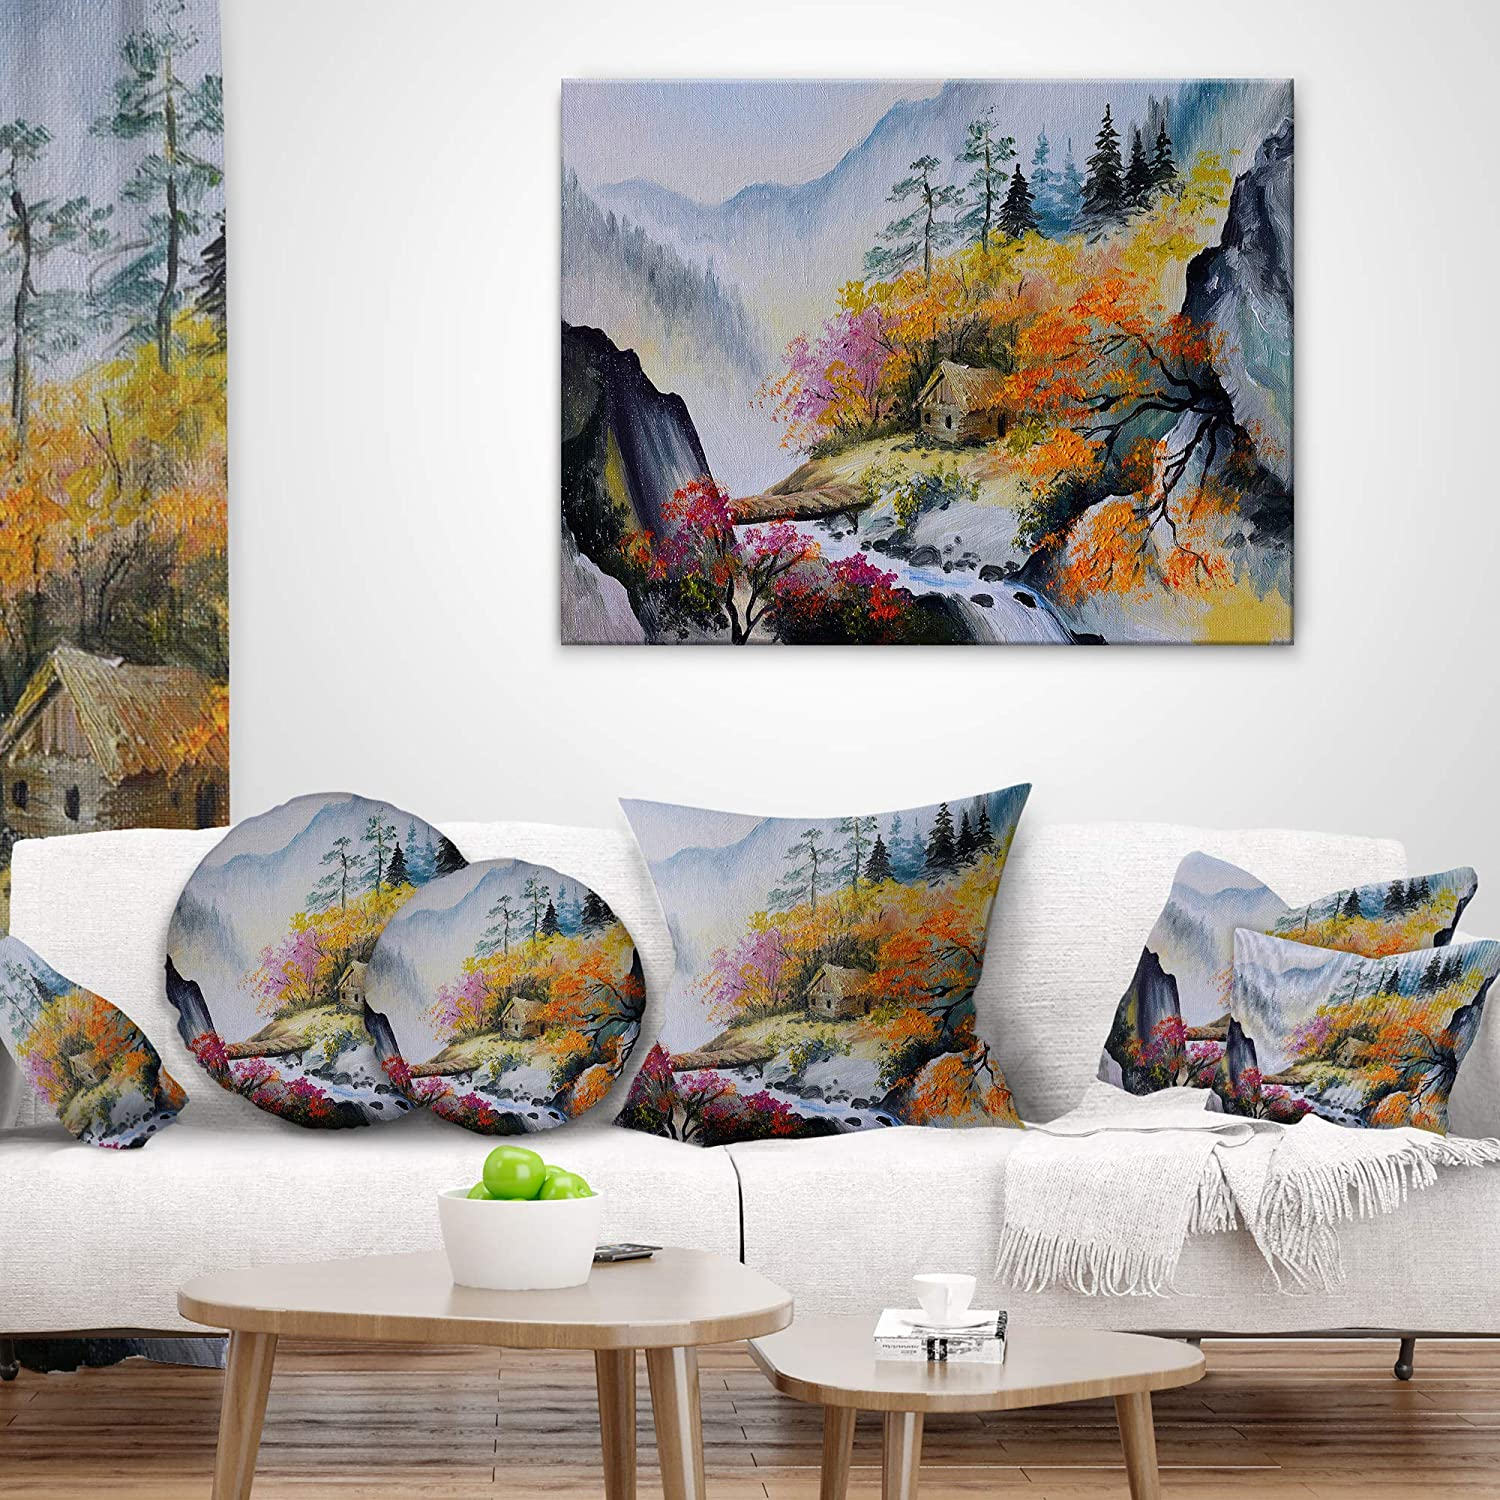 Sofa Throw Pillow 20 Inches Designart CU6248-20-20-C House in The Mountains Landscape Printed Round Cushion Cover for Living Room